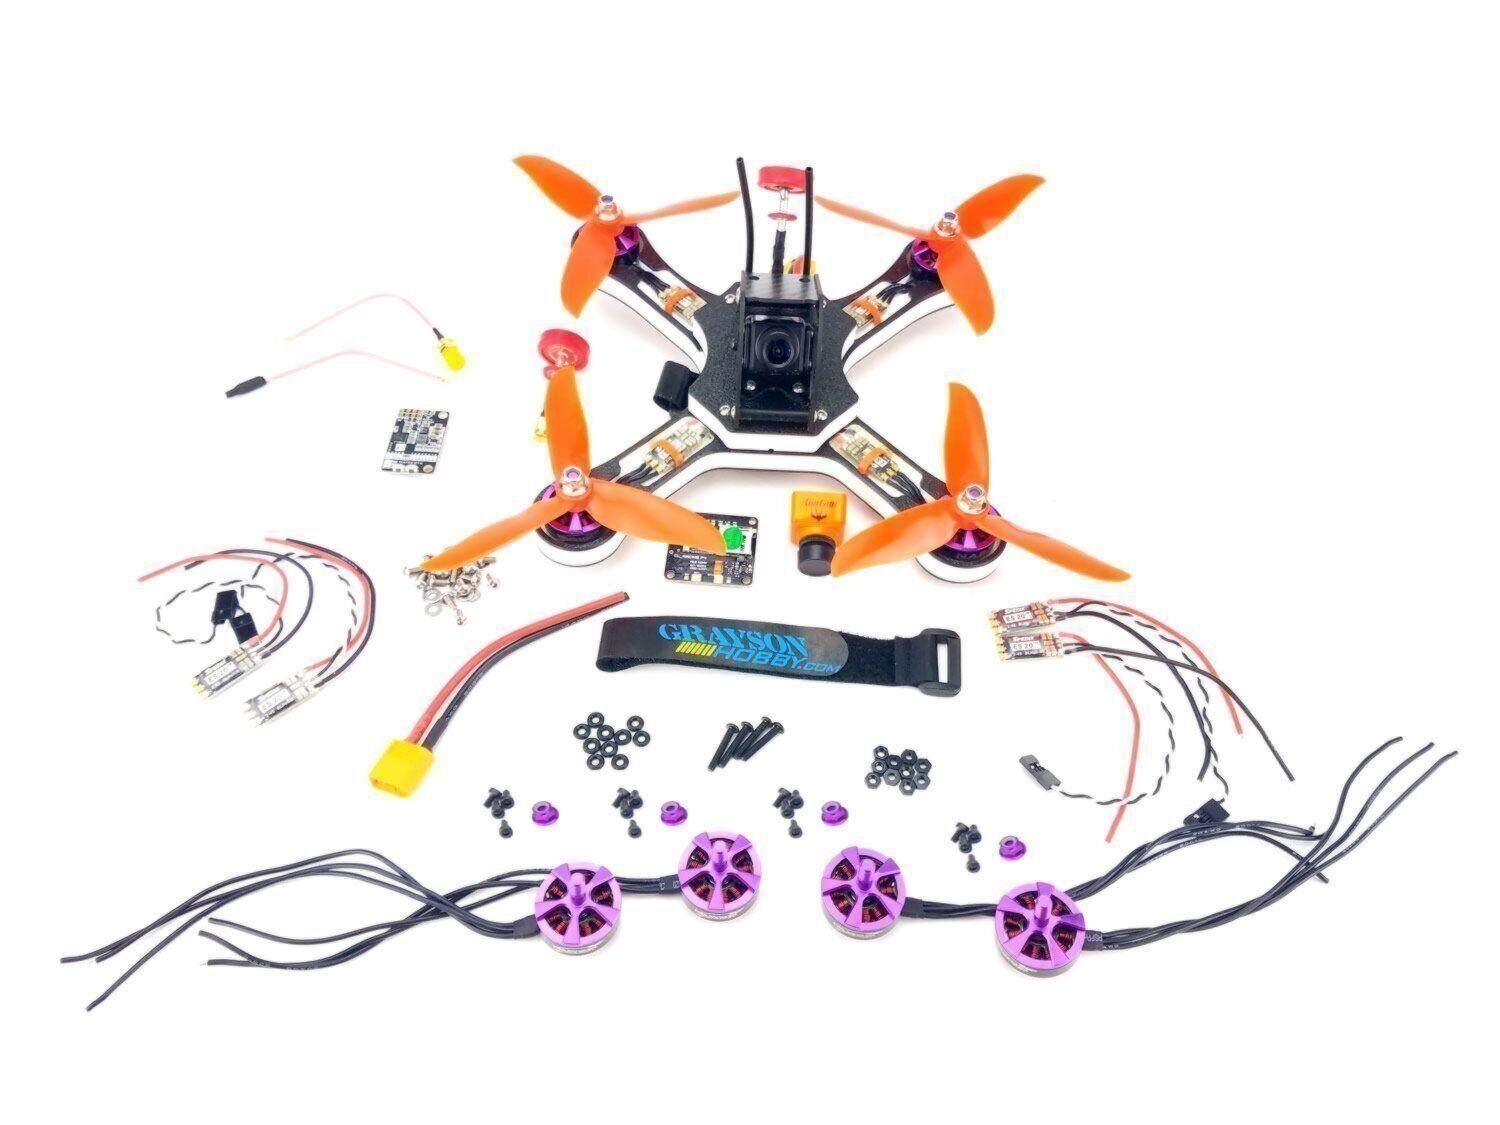 Custom DIY FPV Race Drone